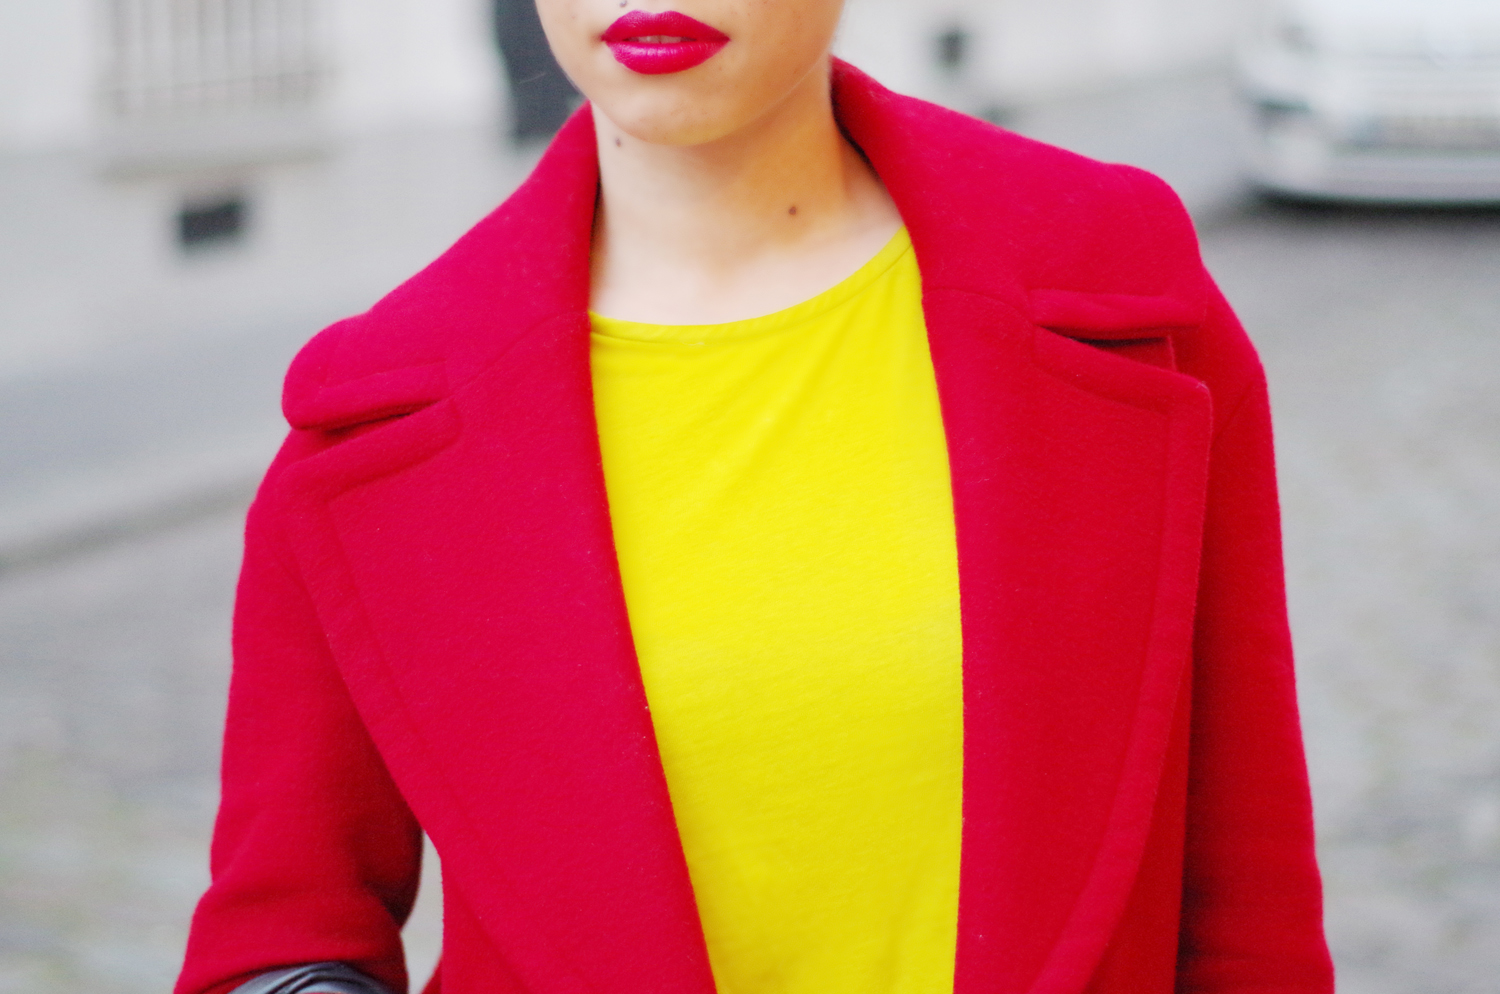 fatimayarie-redcoat-yellow-croptop-parisblogger-redlips-imgp0053